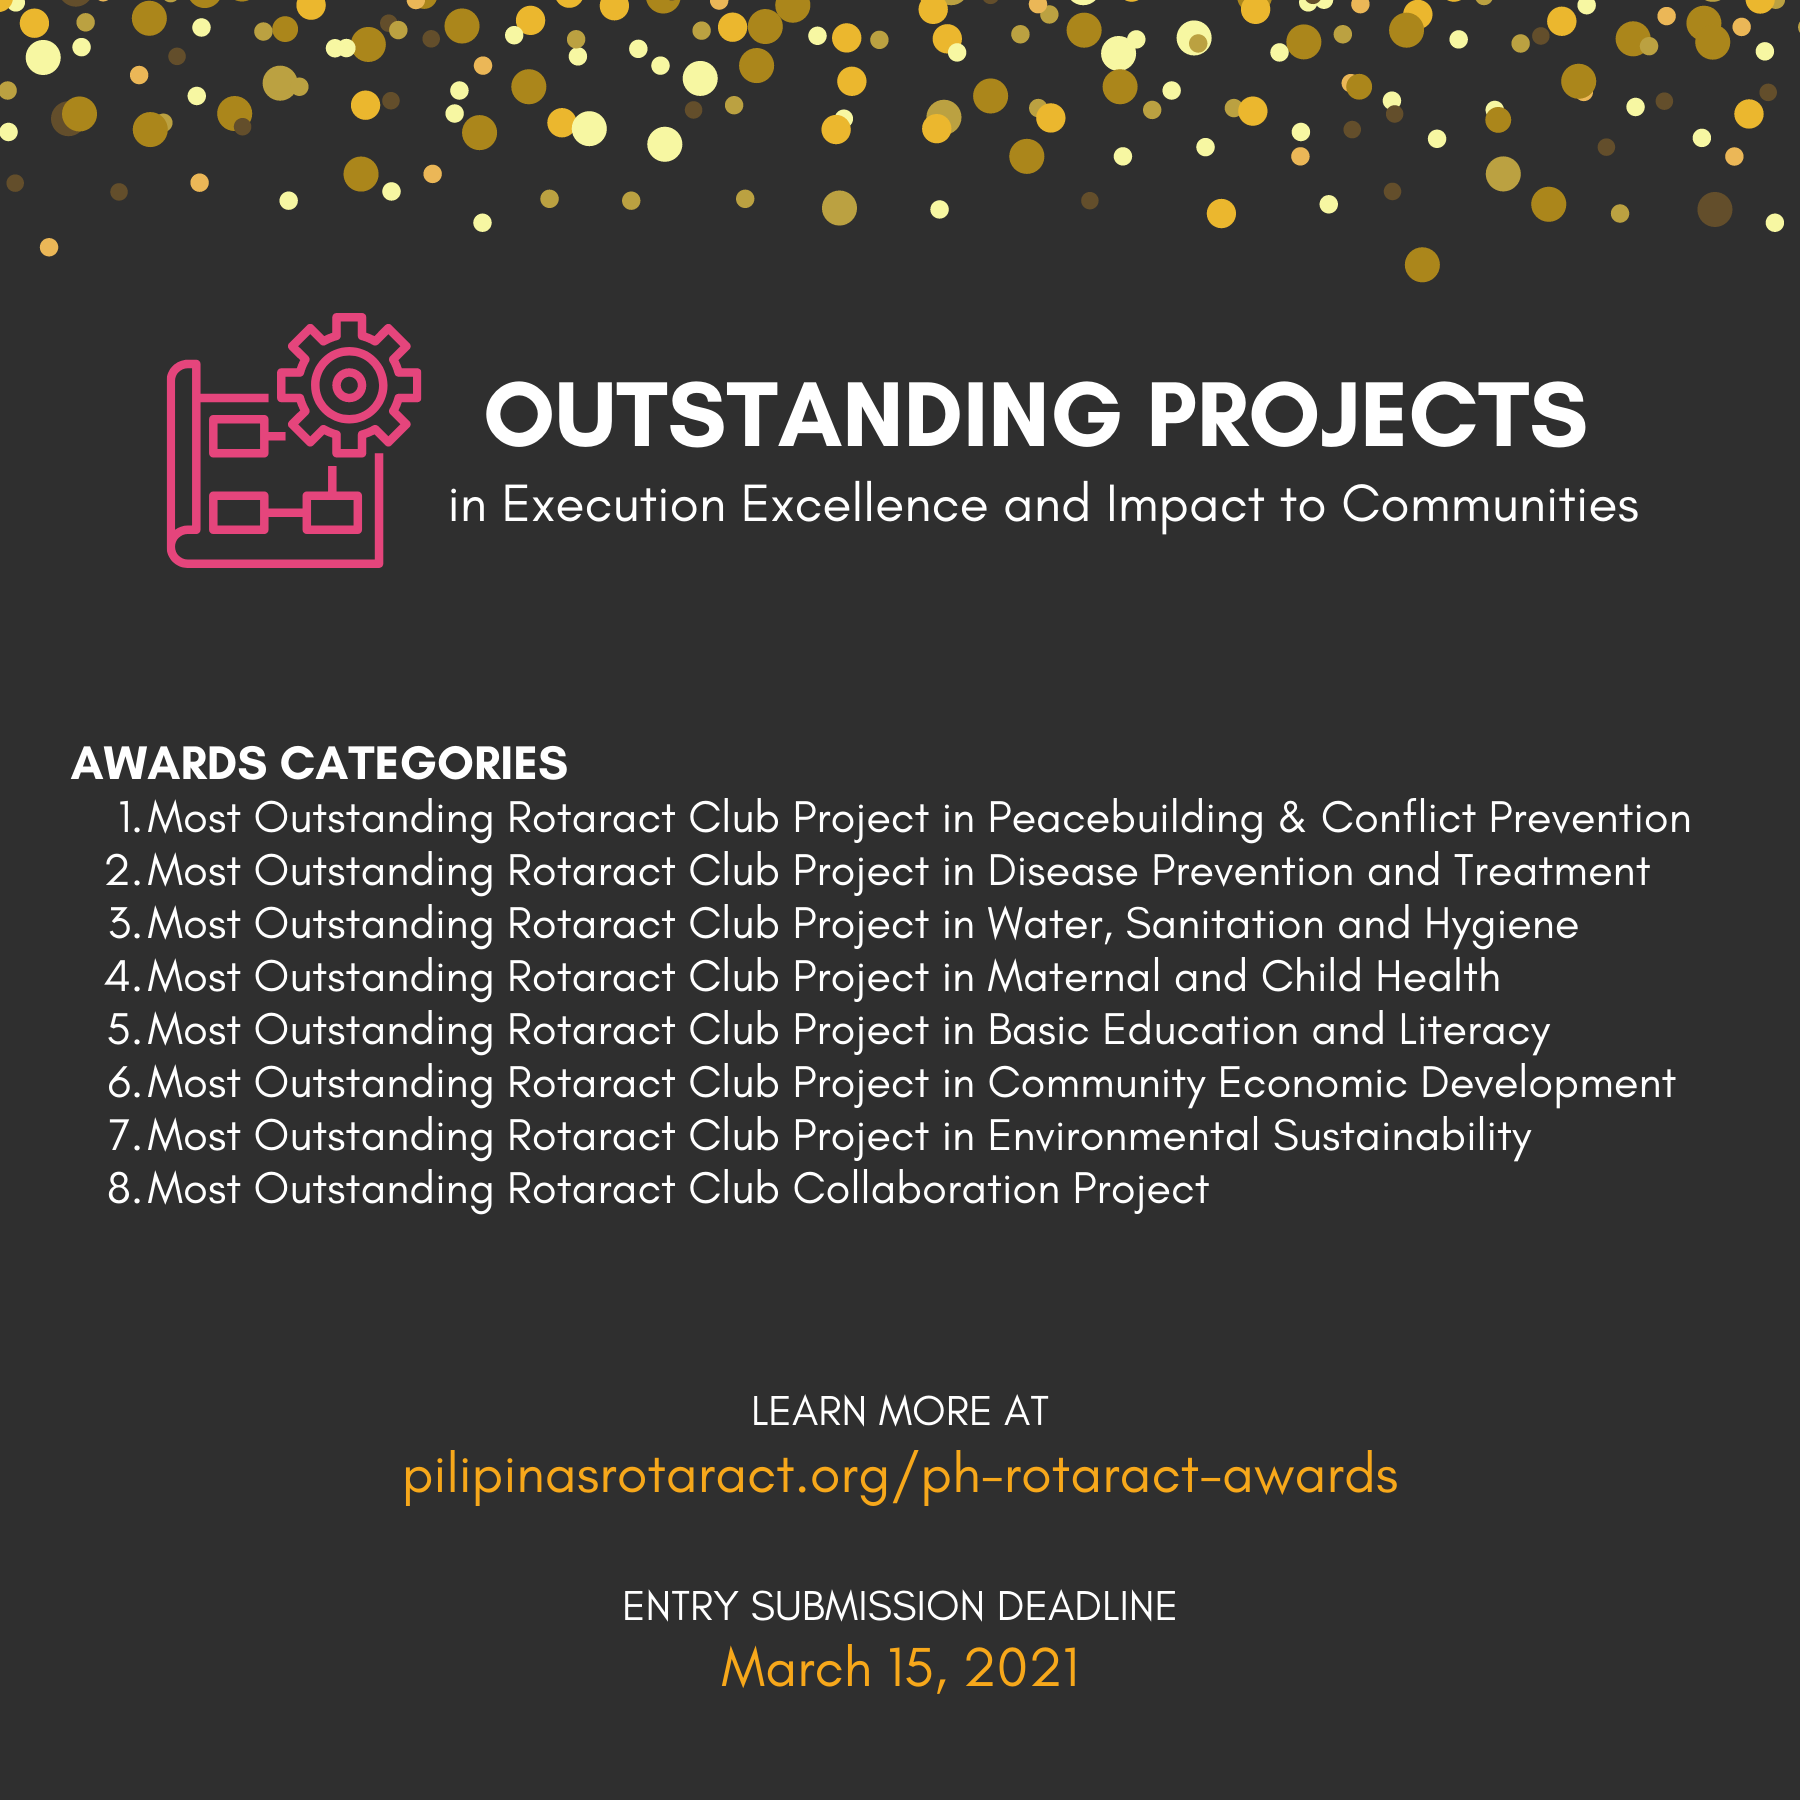 Awards for Outstanding Rotaract Club Service Projects